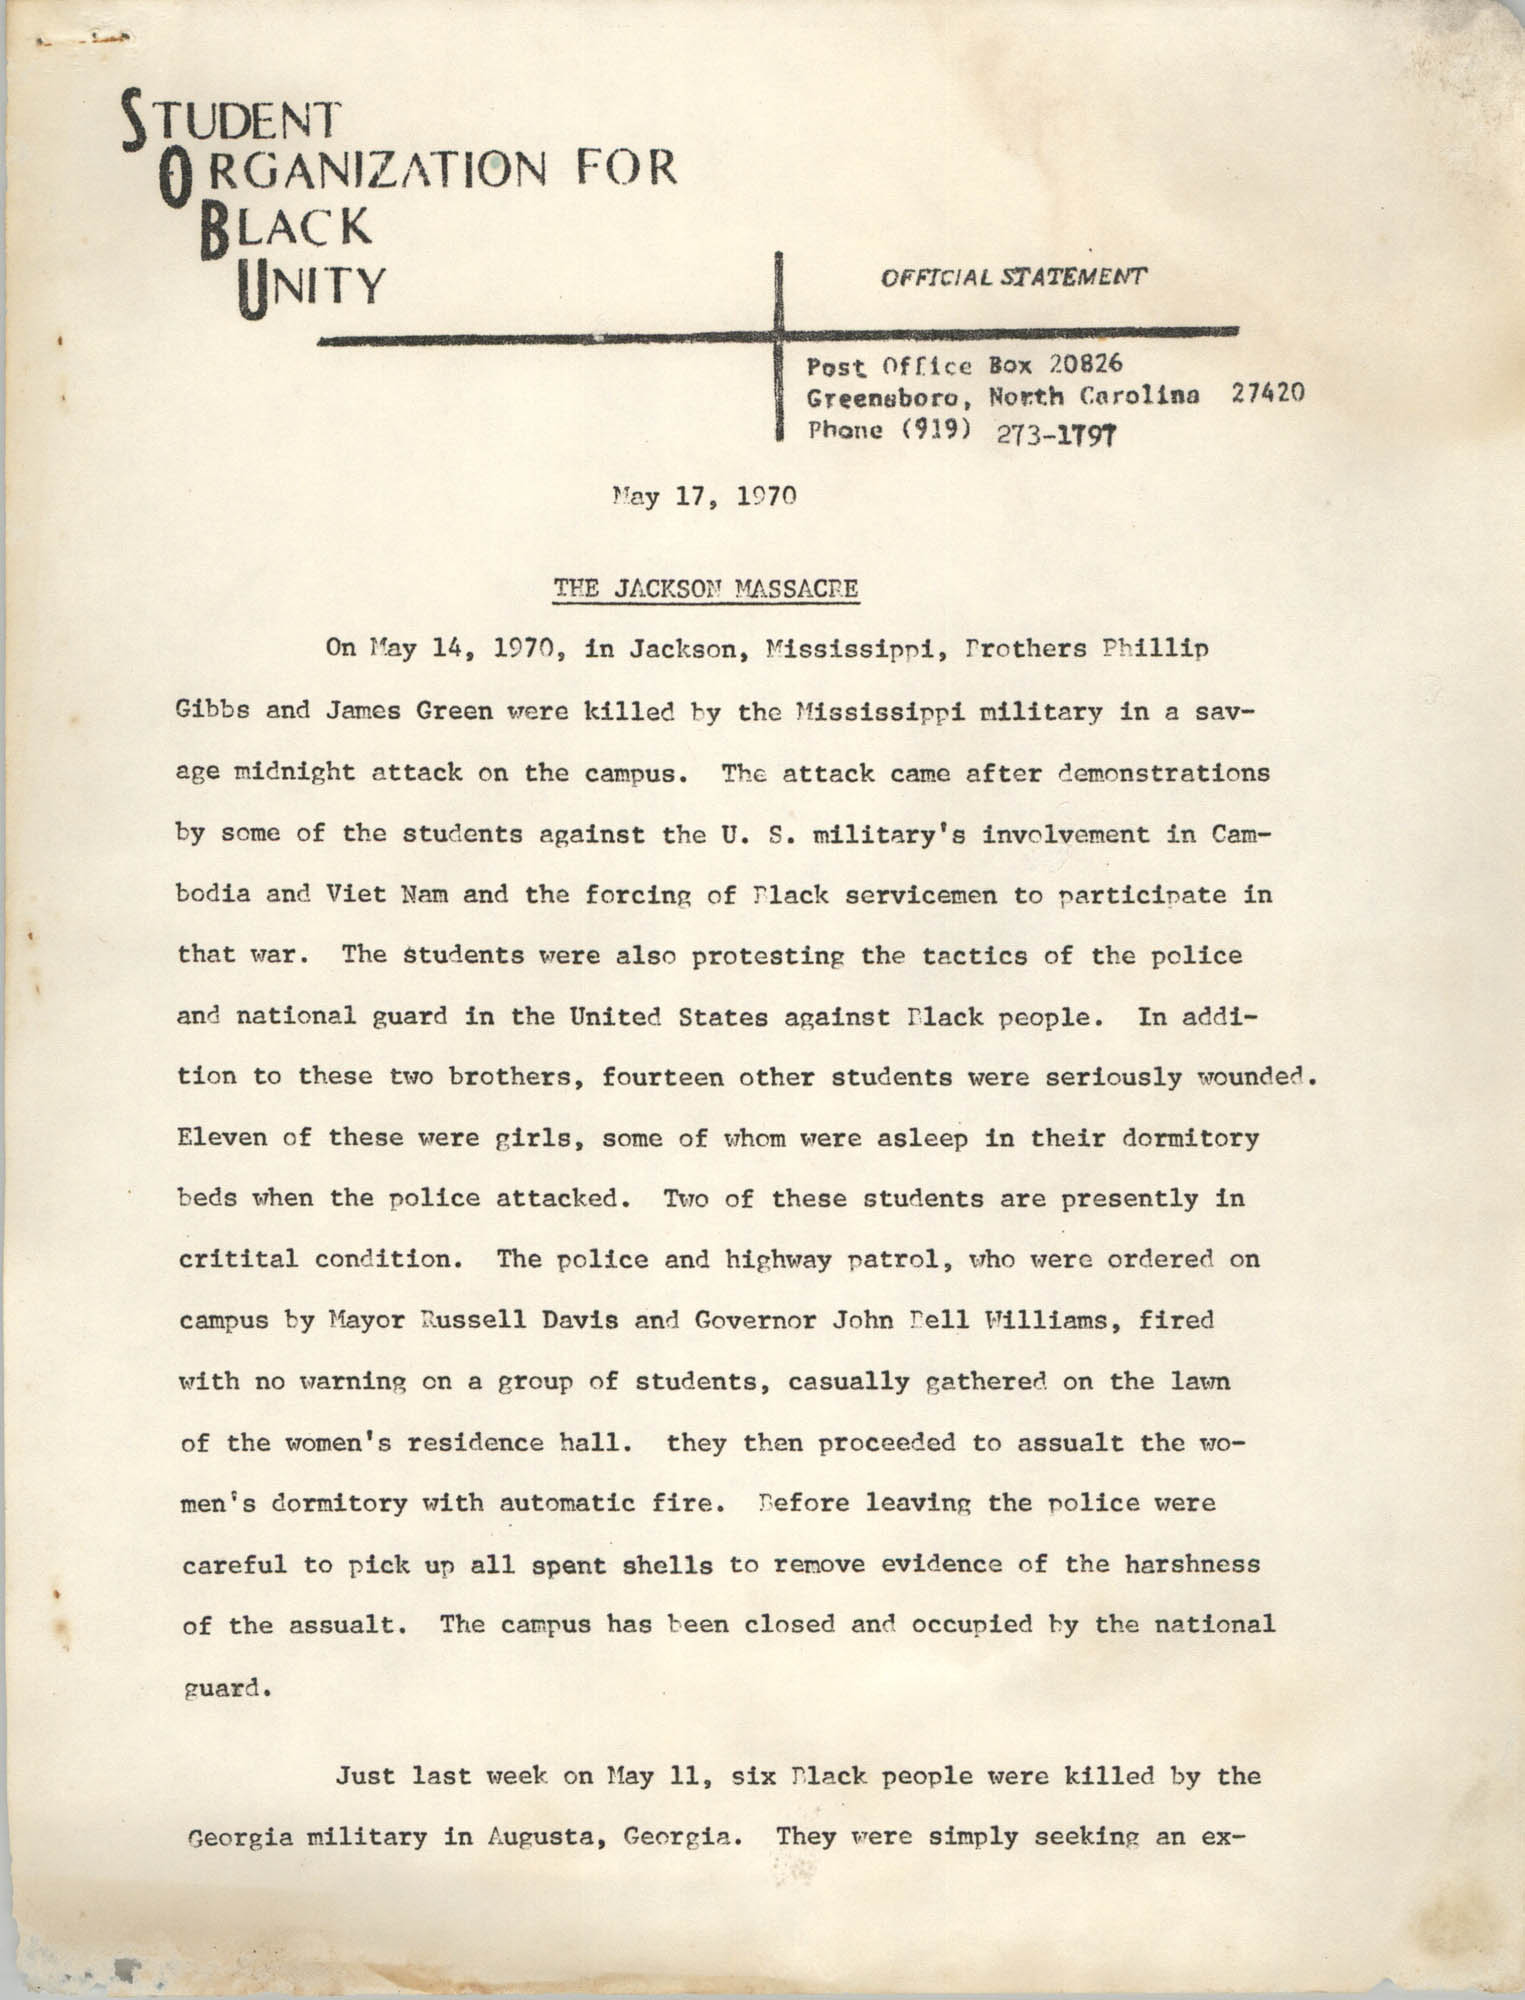 Official Statement, May 17, 1970